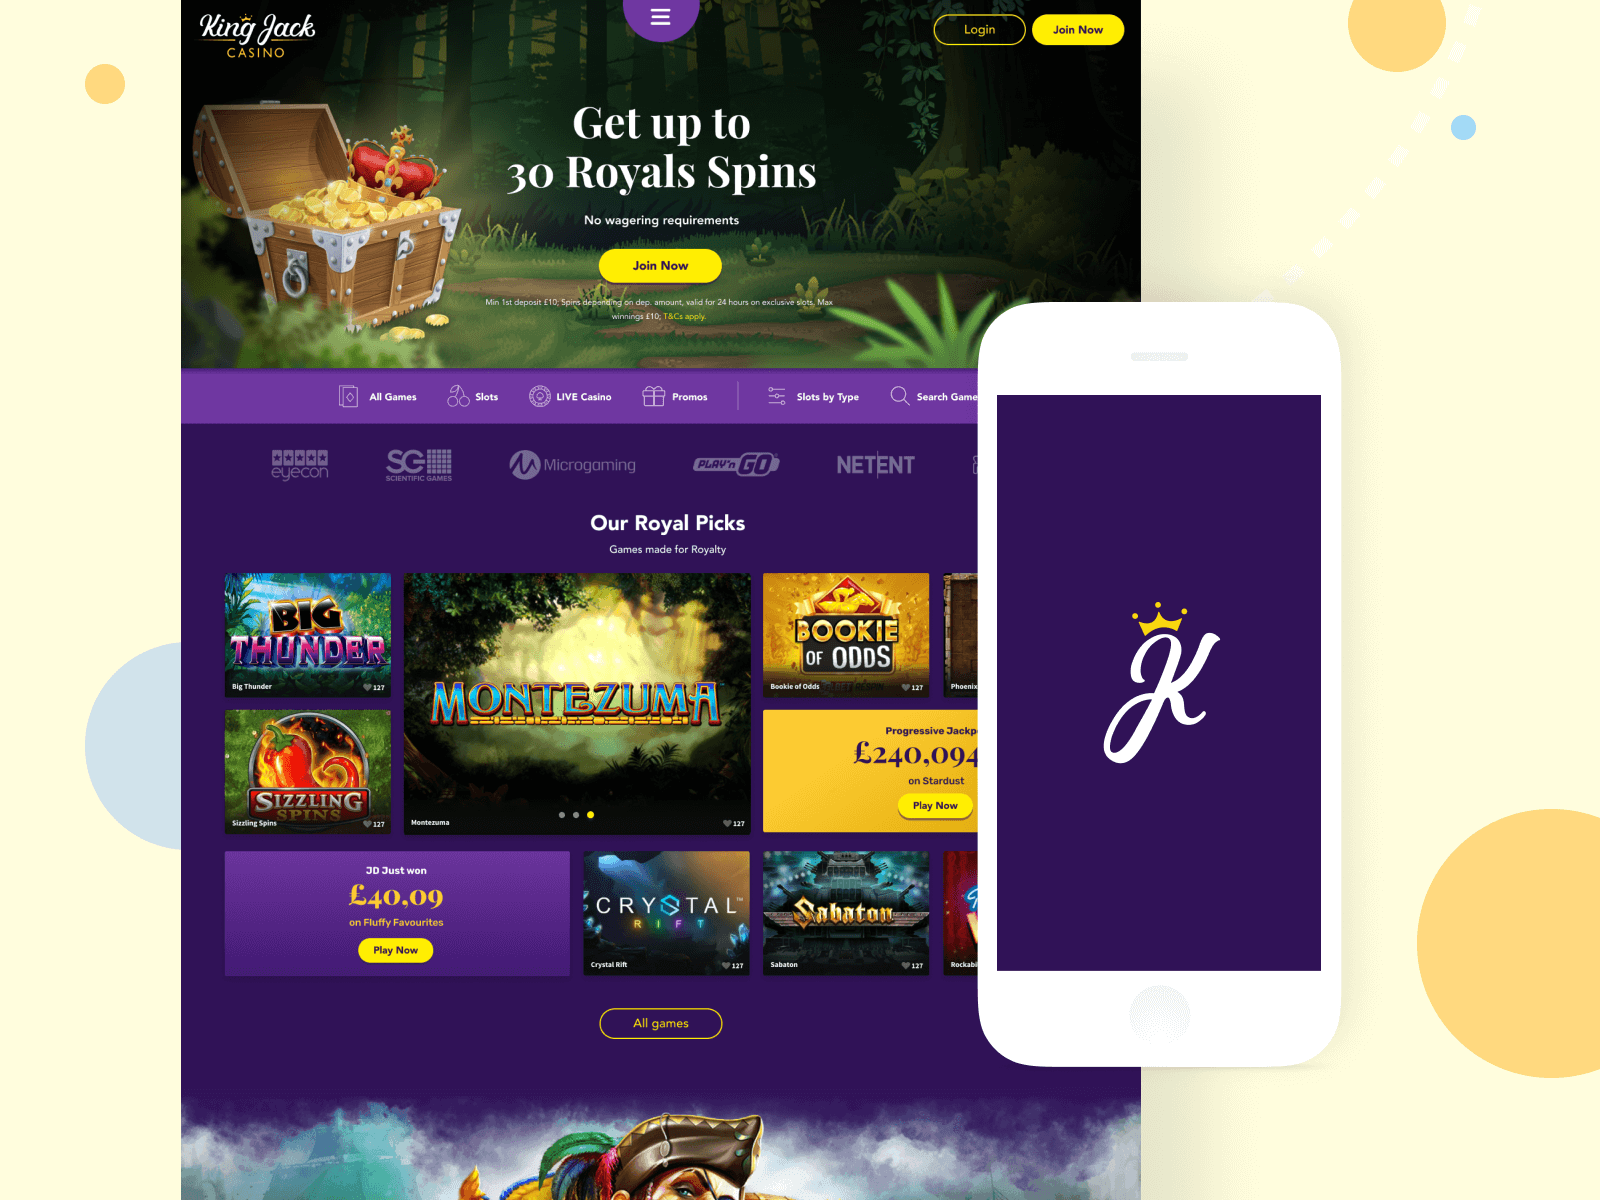 UI King Jack Casino Revamp